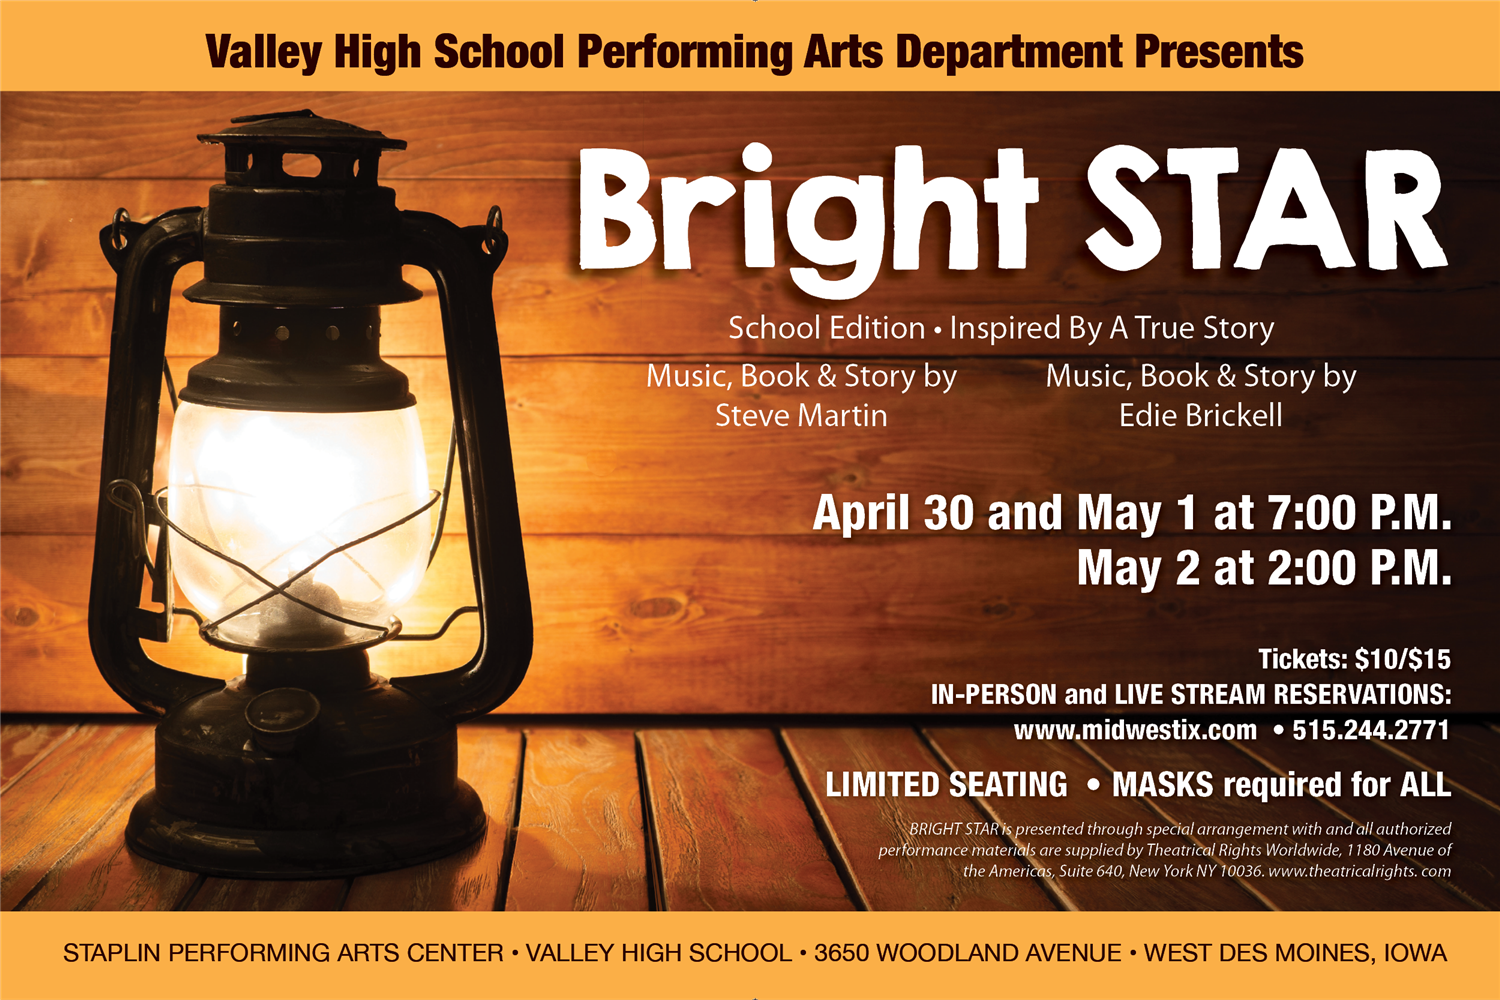 bright star school edition event poster